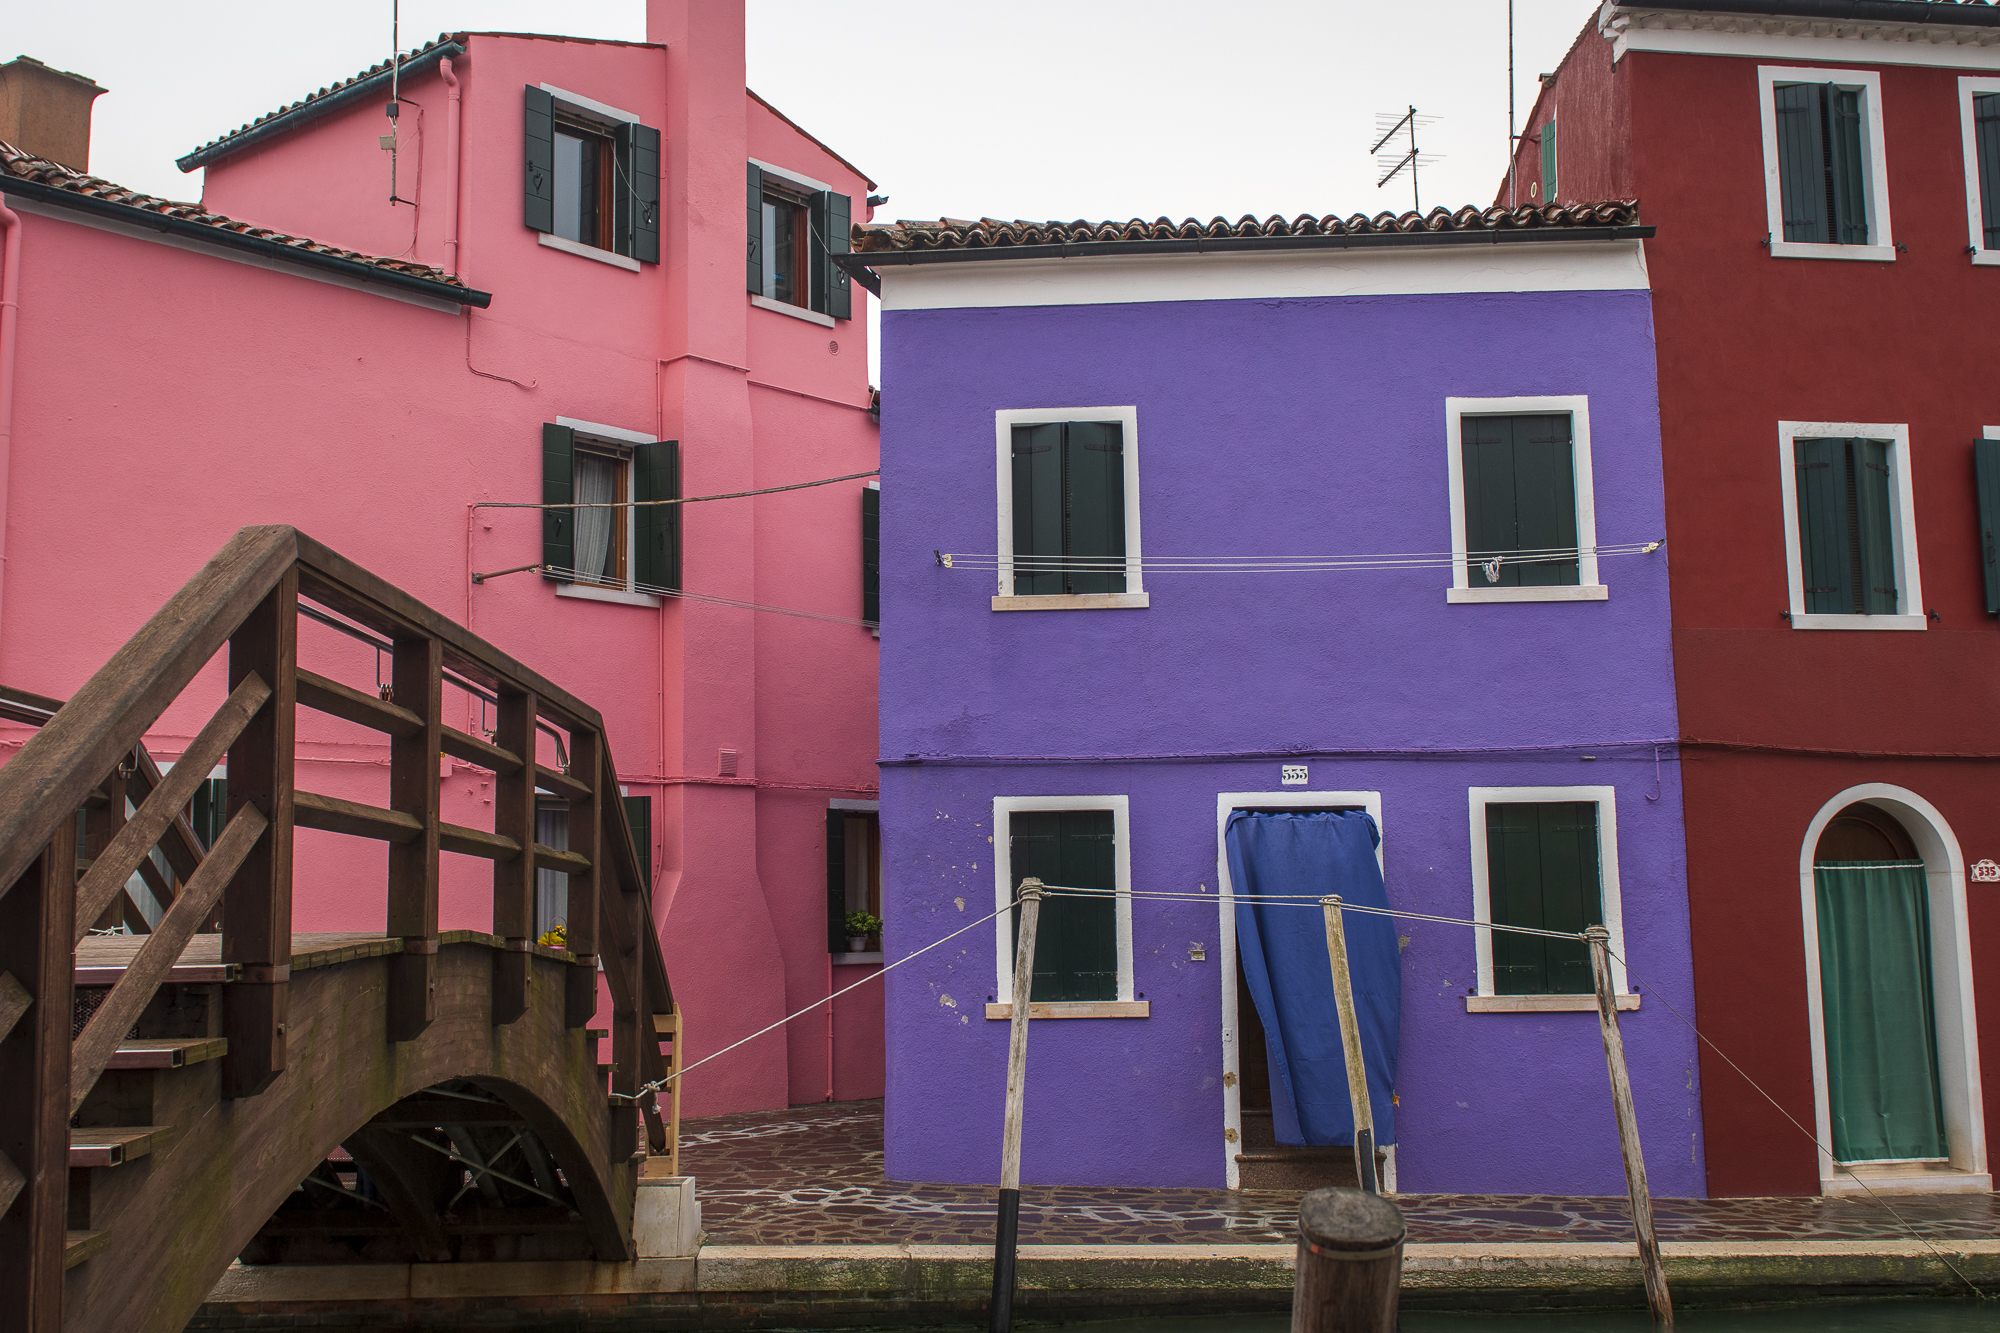 Colourful Houses, Burano  PHOTOGRAPHY: ALEXANDER J.E. BRADLEY • NIKON D500 • AF-S NIKKOR 24-70MM Ƒ/2.8G ED @ 24MM • Ƒ/4 • 1/125 SEC • ISO 200